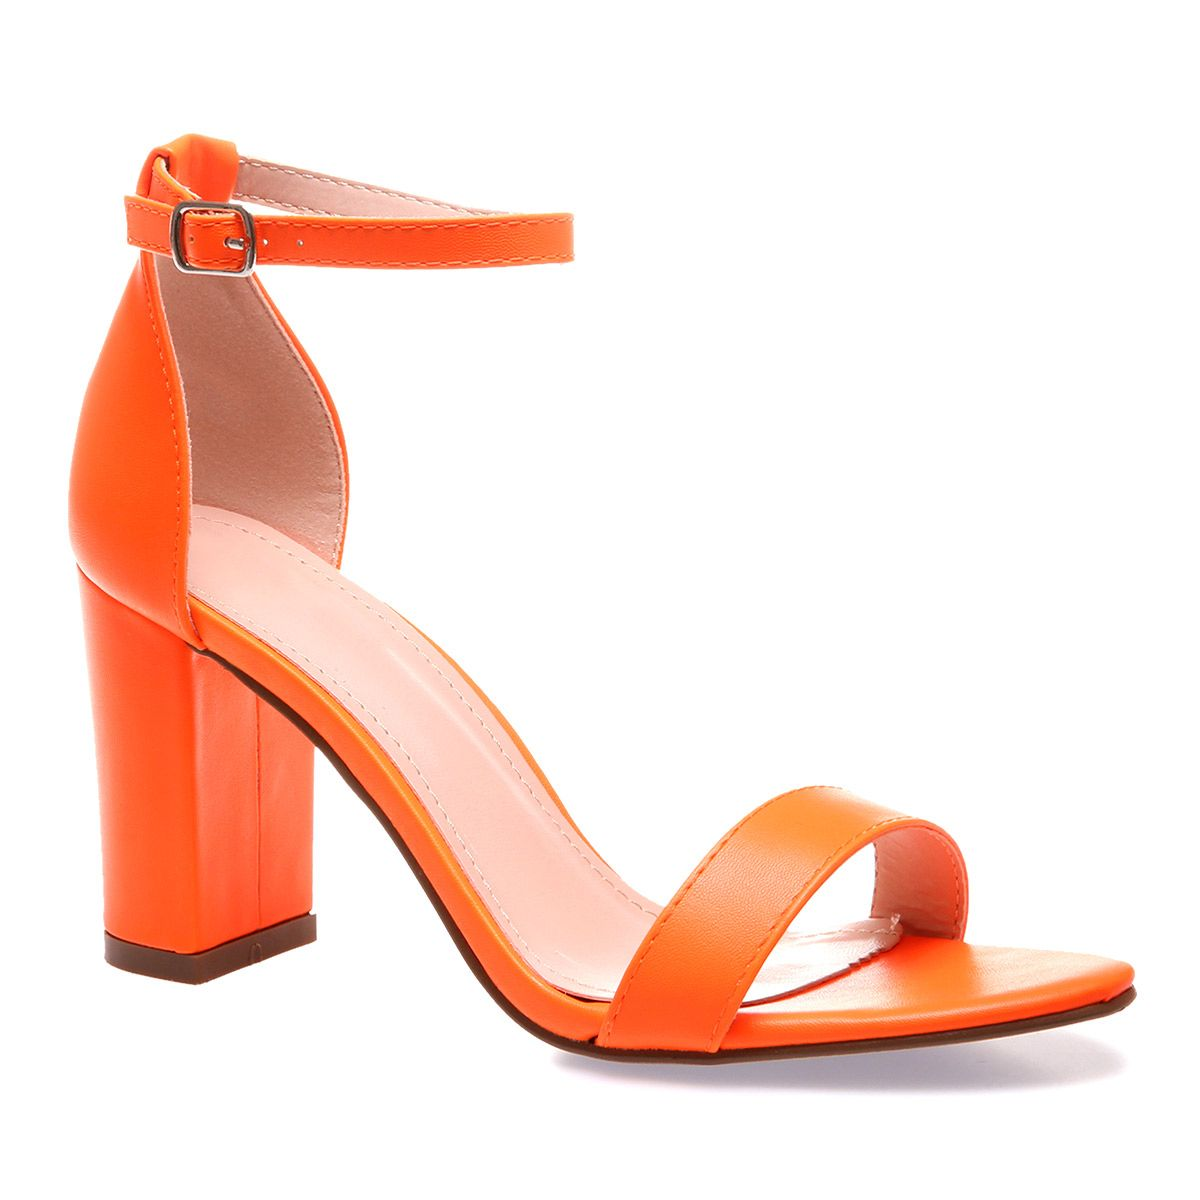 En Simili Sandales Fluo Orange Cuir I7gbfvYym6